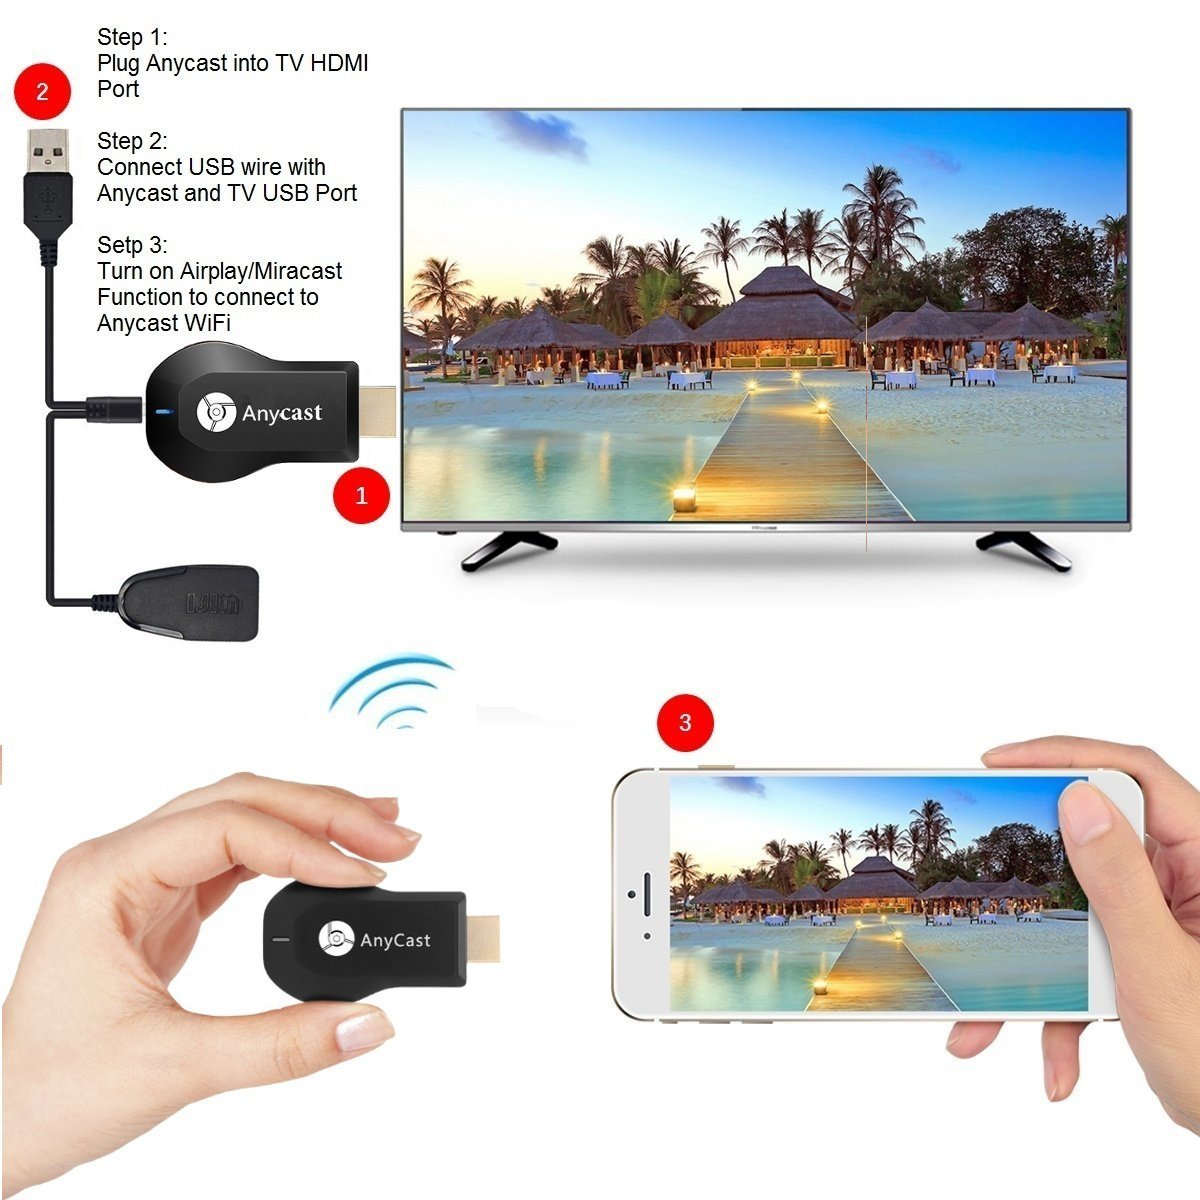 Wifi Display Dongle Wireless Hdmi 1080p Airplay Anycast Ezcast Receiver Hd Mirroring Digital Av To Connector For Ios Android Samsung Iphone Ipad